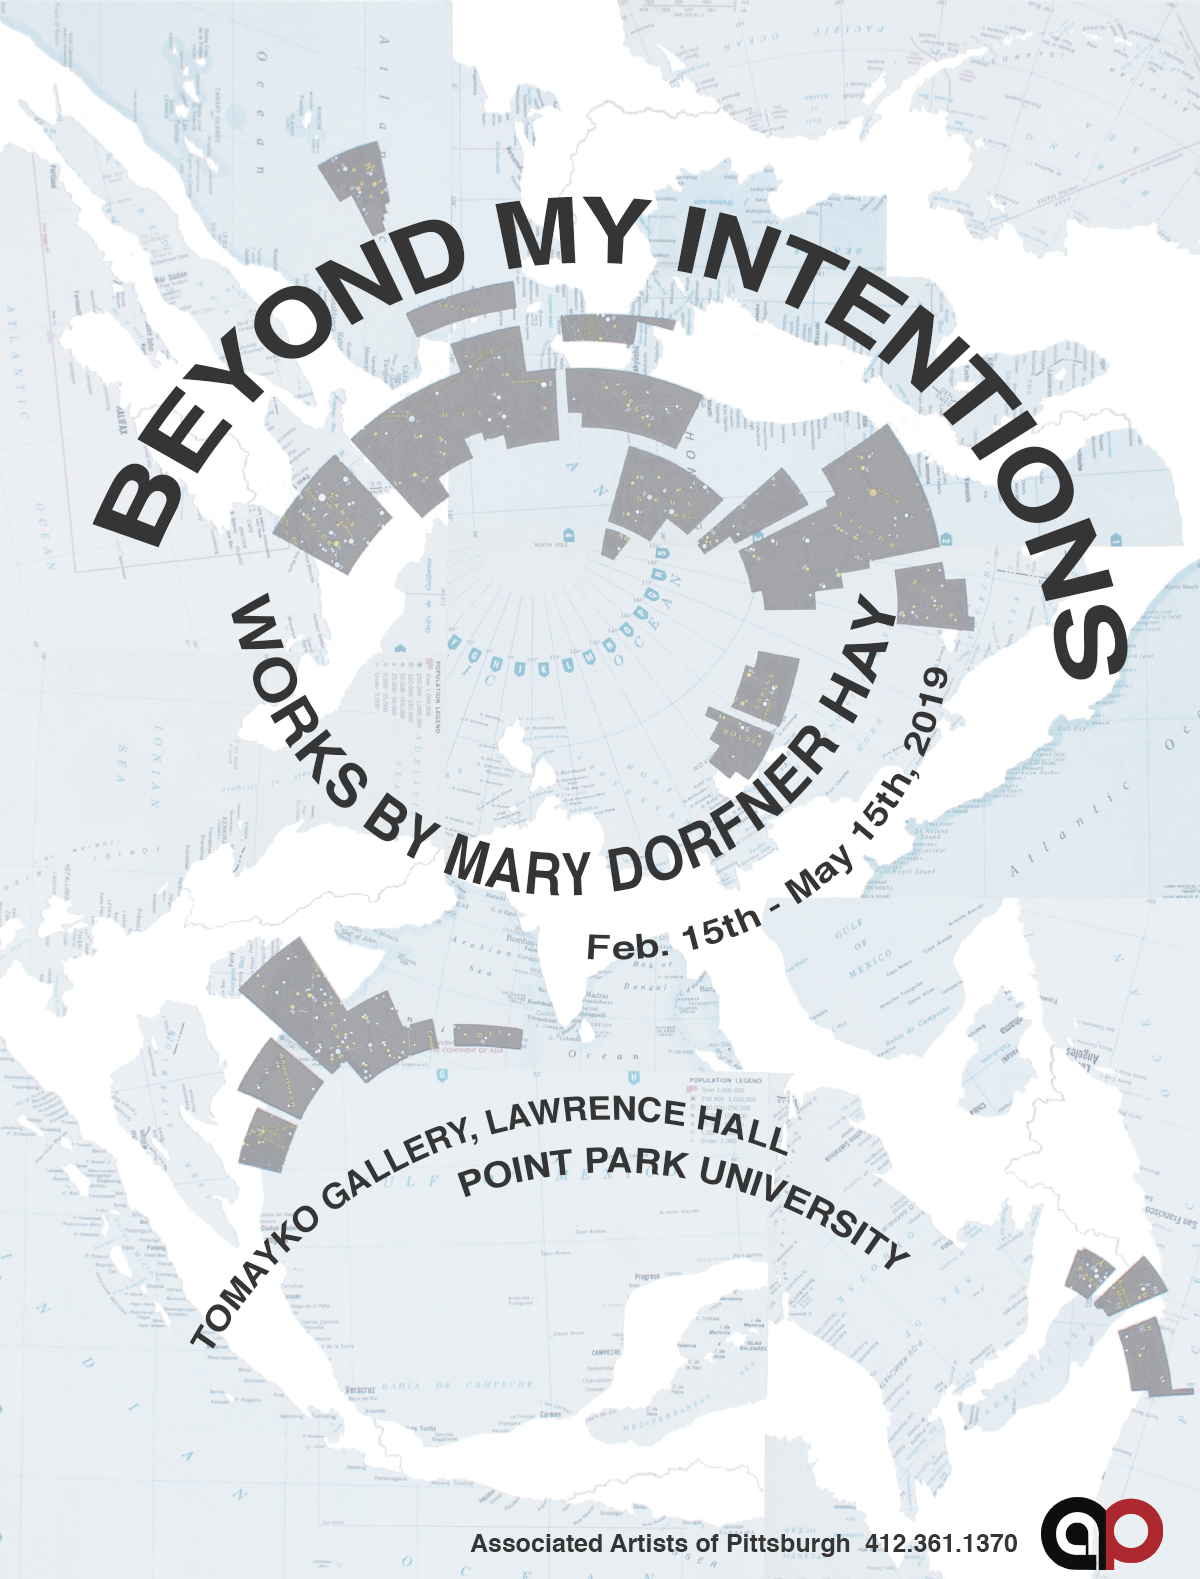 Beyond My Intentions   Works by AAP member Mary Dorfner Hay  Feb 2019 - May 2019 Tomayko Gallery, Lawrence Hall Point Park University, Pittsburgh, PA